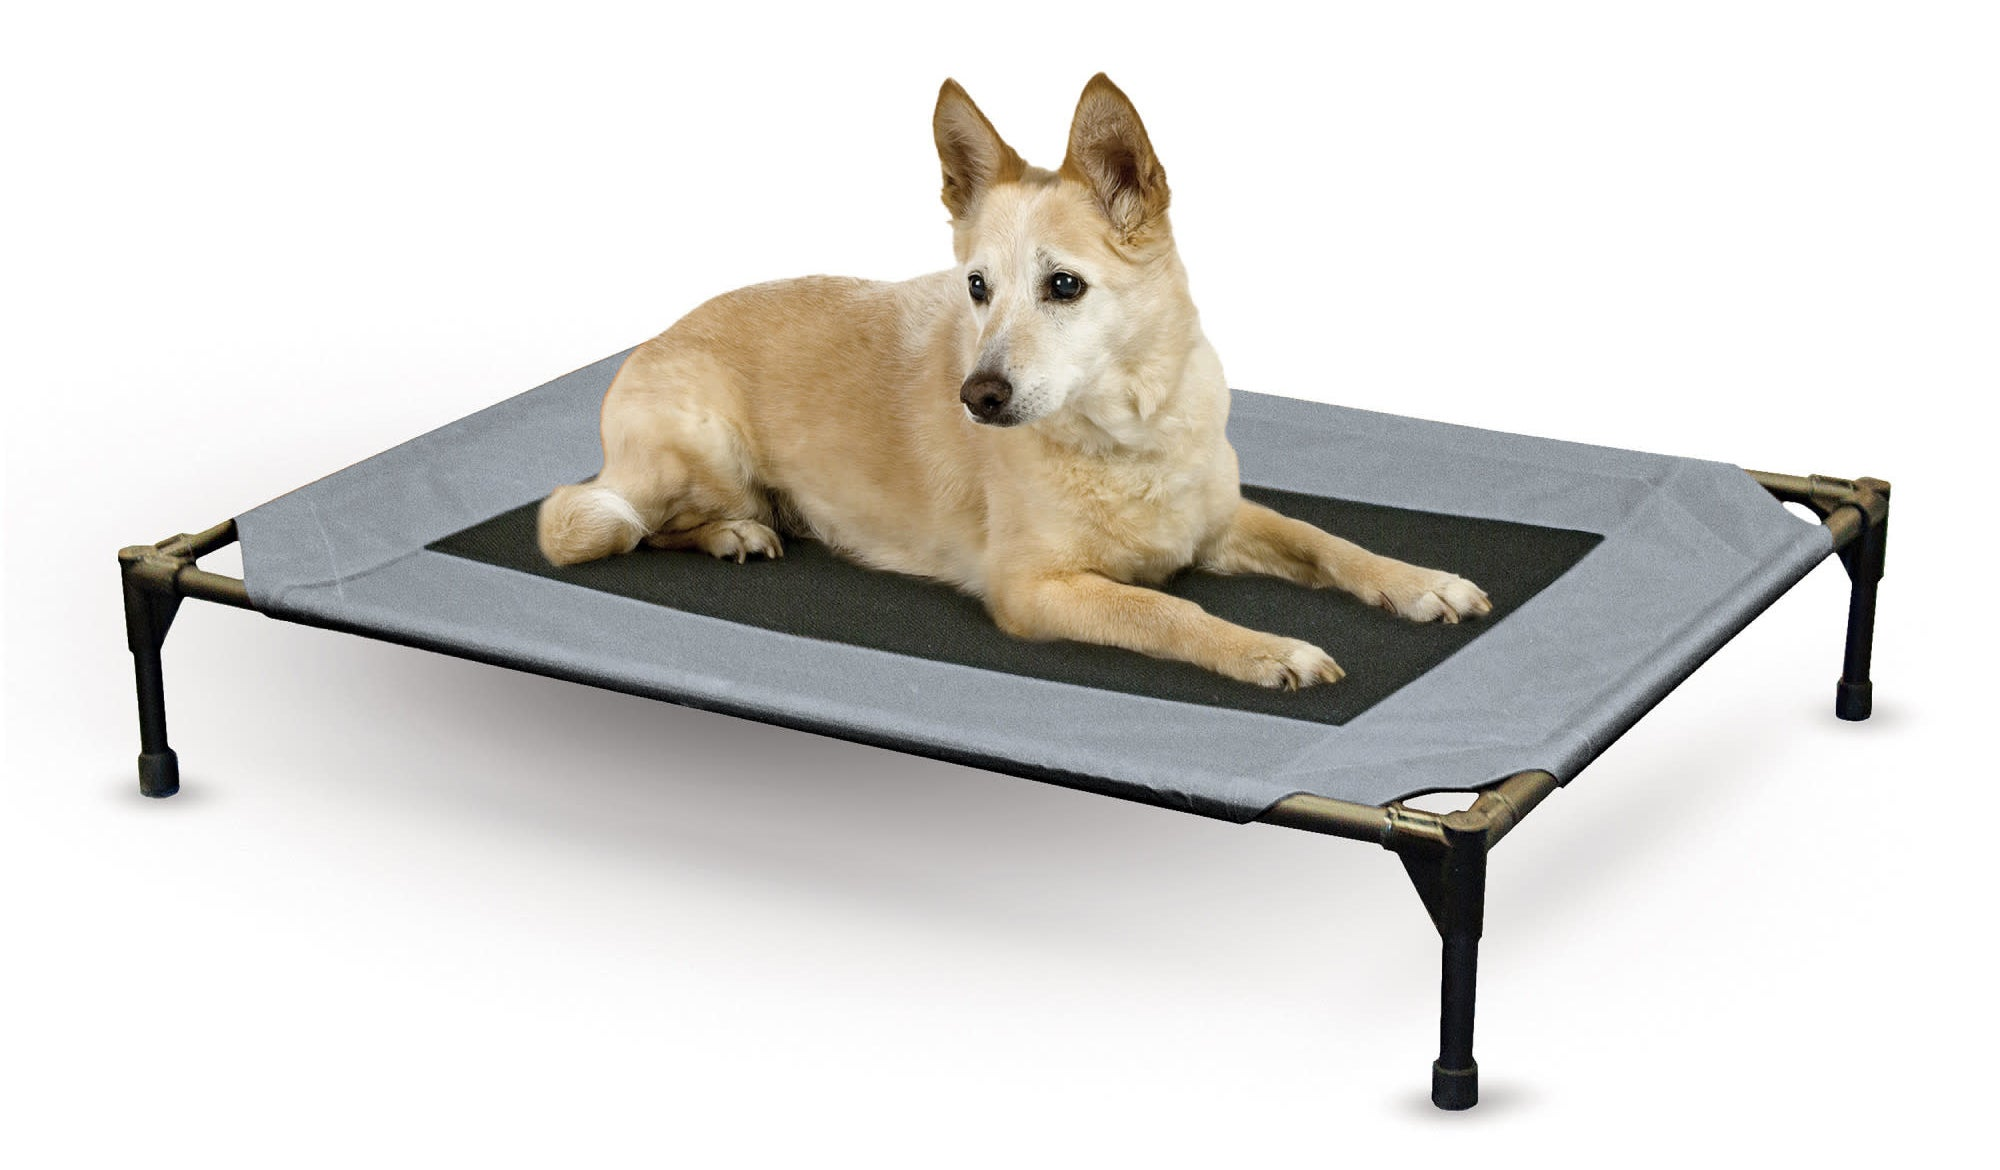 a medium-sized dog on top of the blue and black cot